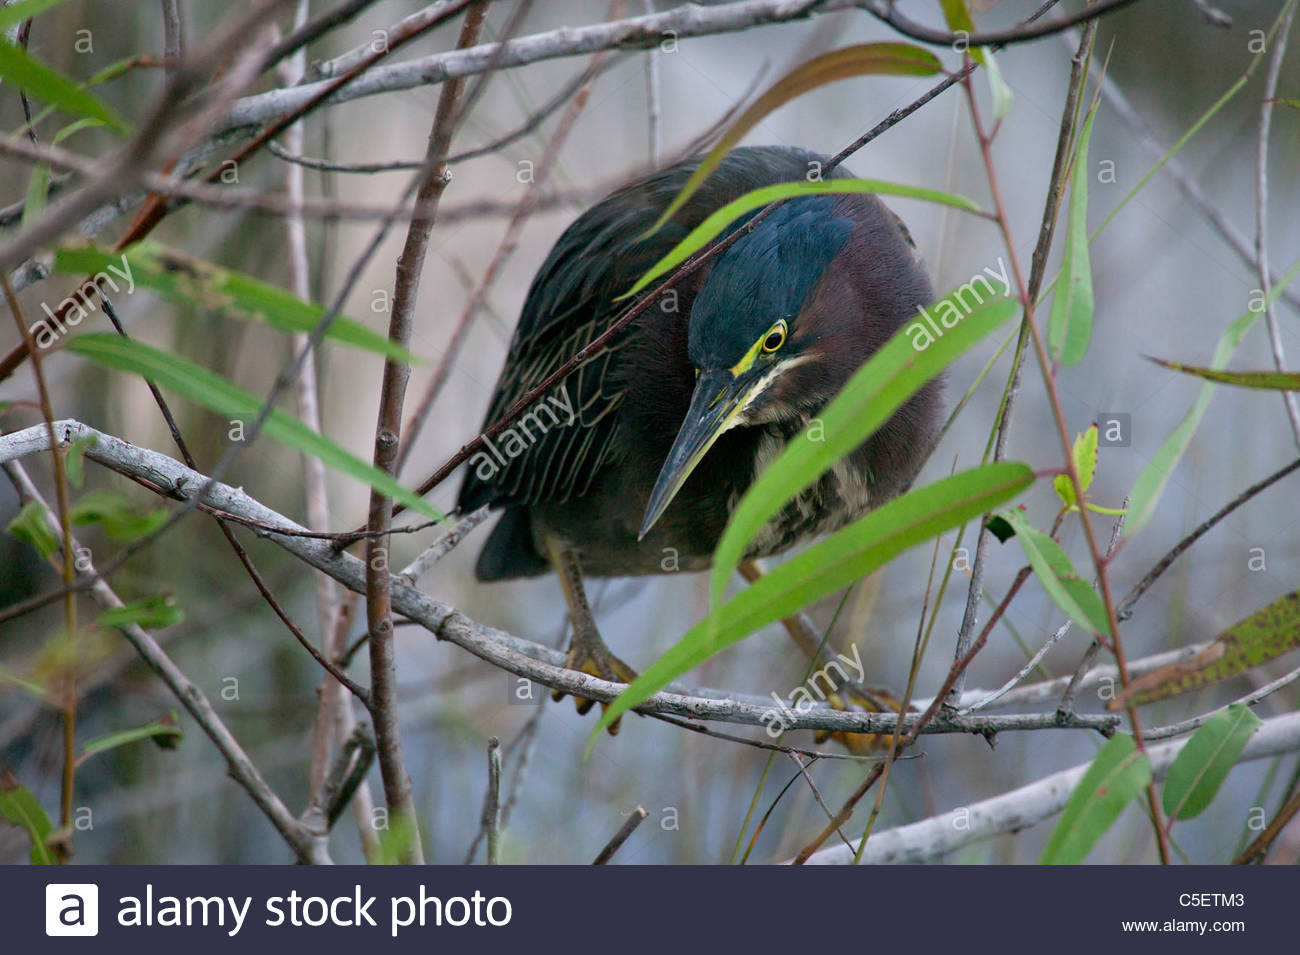 A green heron (Butorides virescens) hunts from a small branch over shallow water in the Florida Everglades. - Stock Image